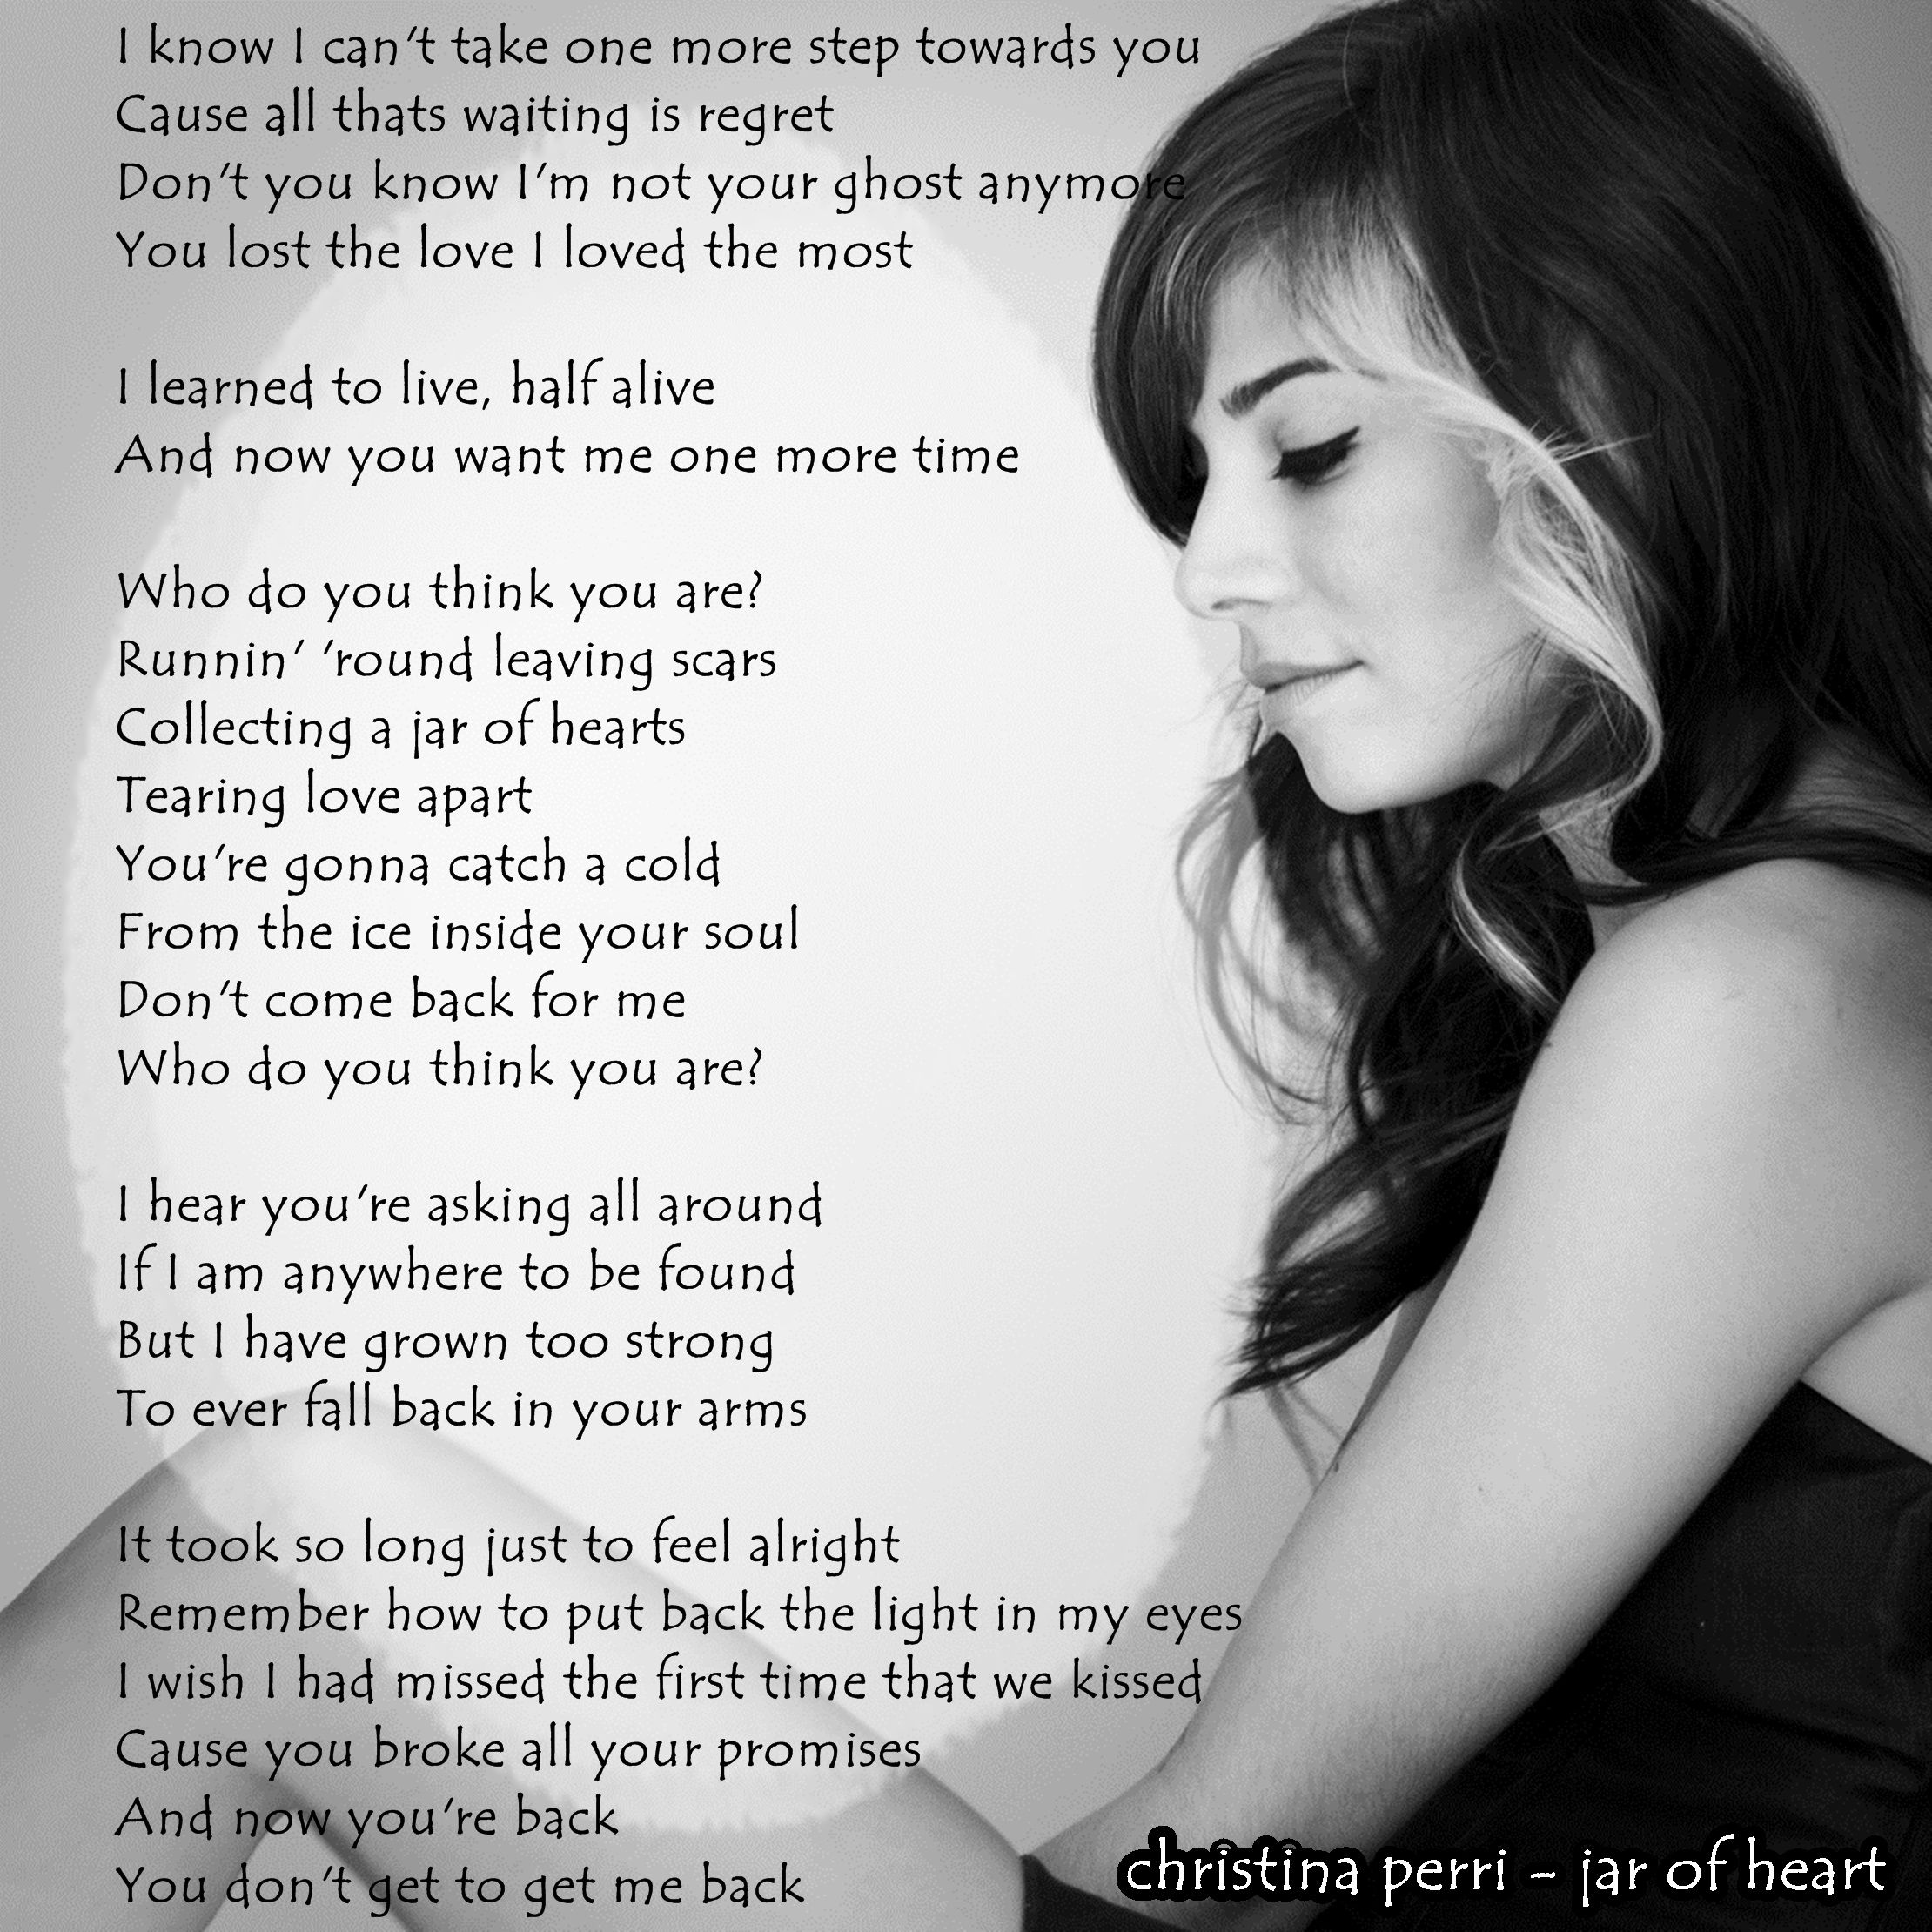 christina perri - jar of heart | songlyrics | Pinterest ...